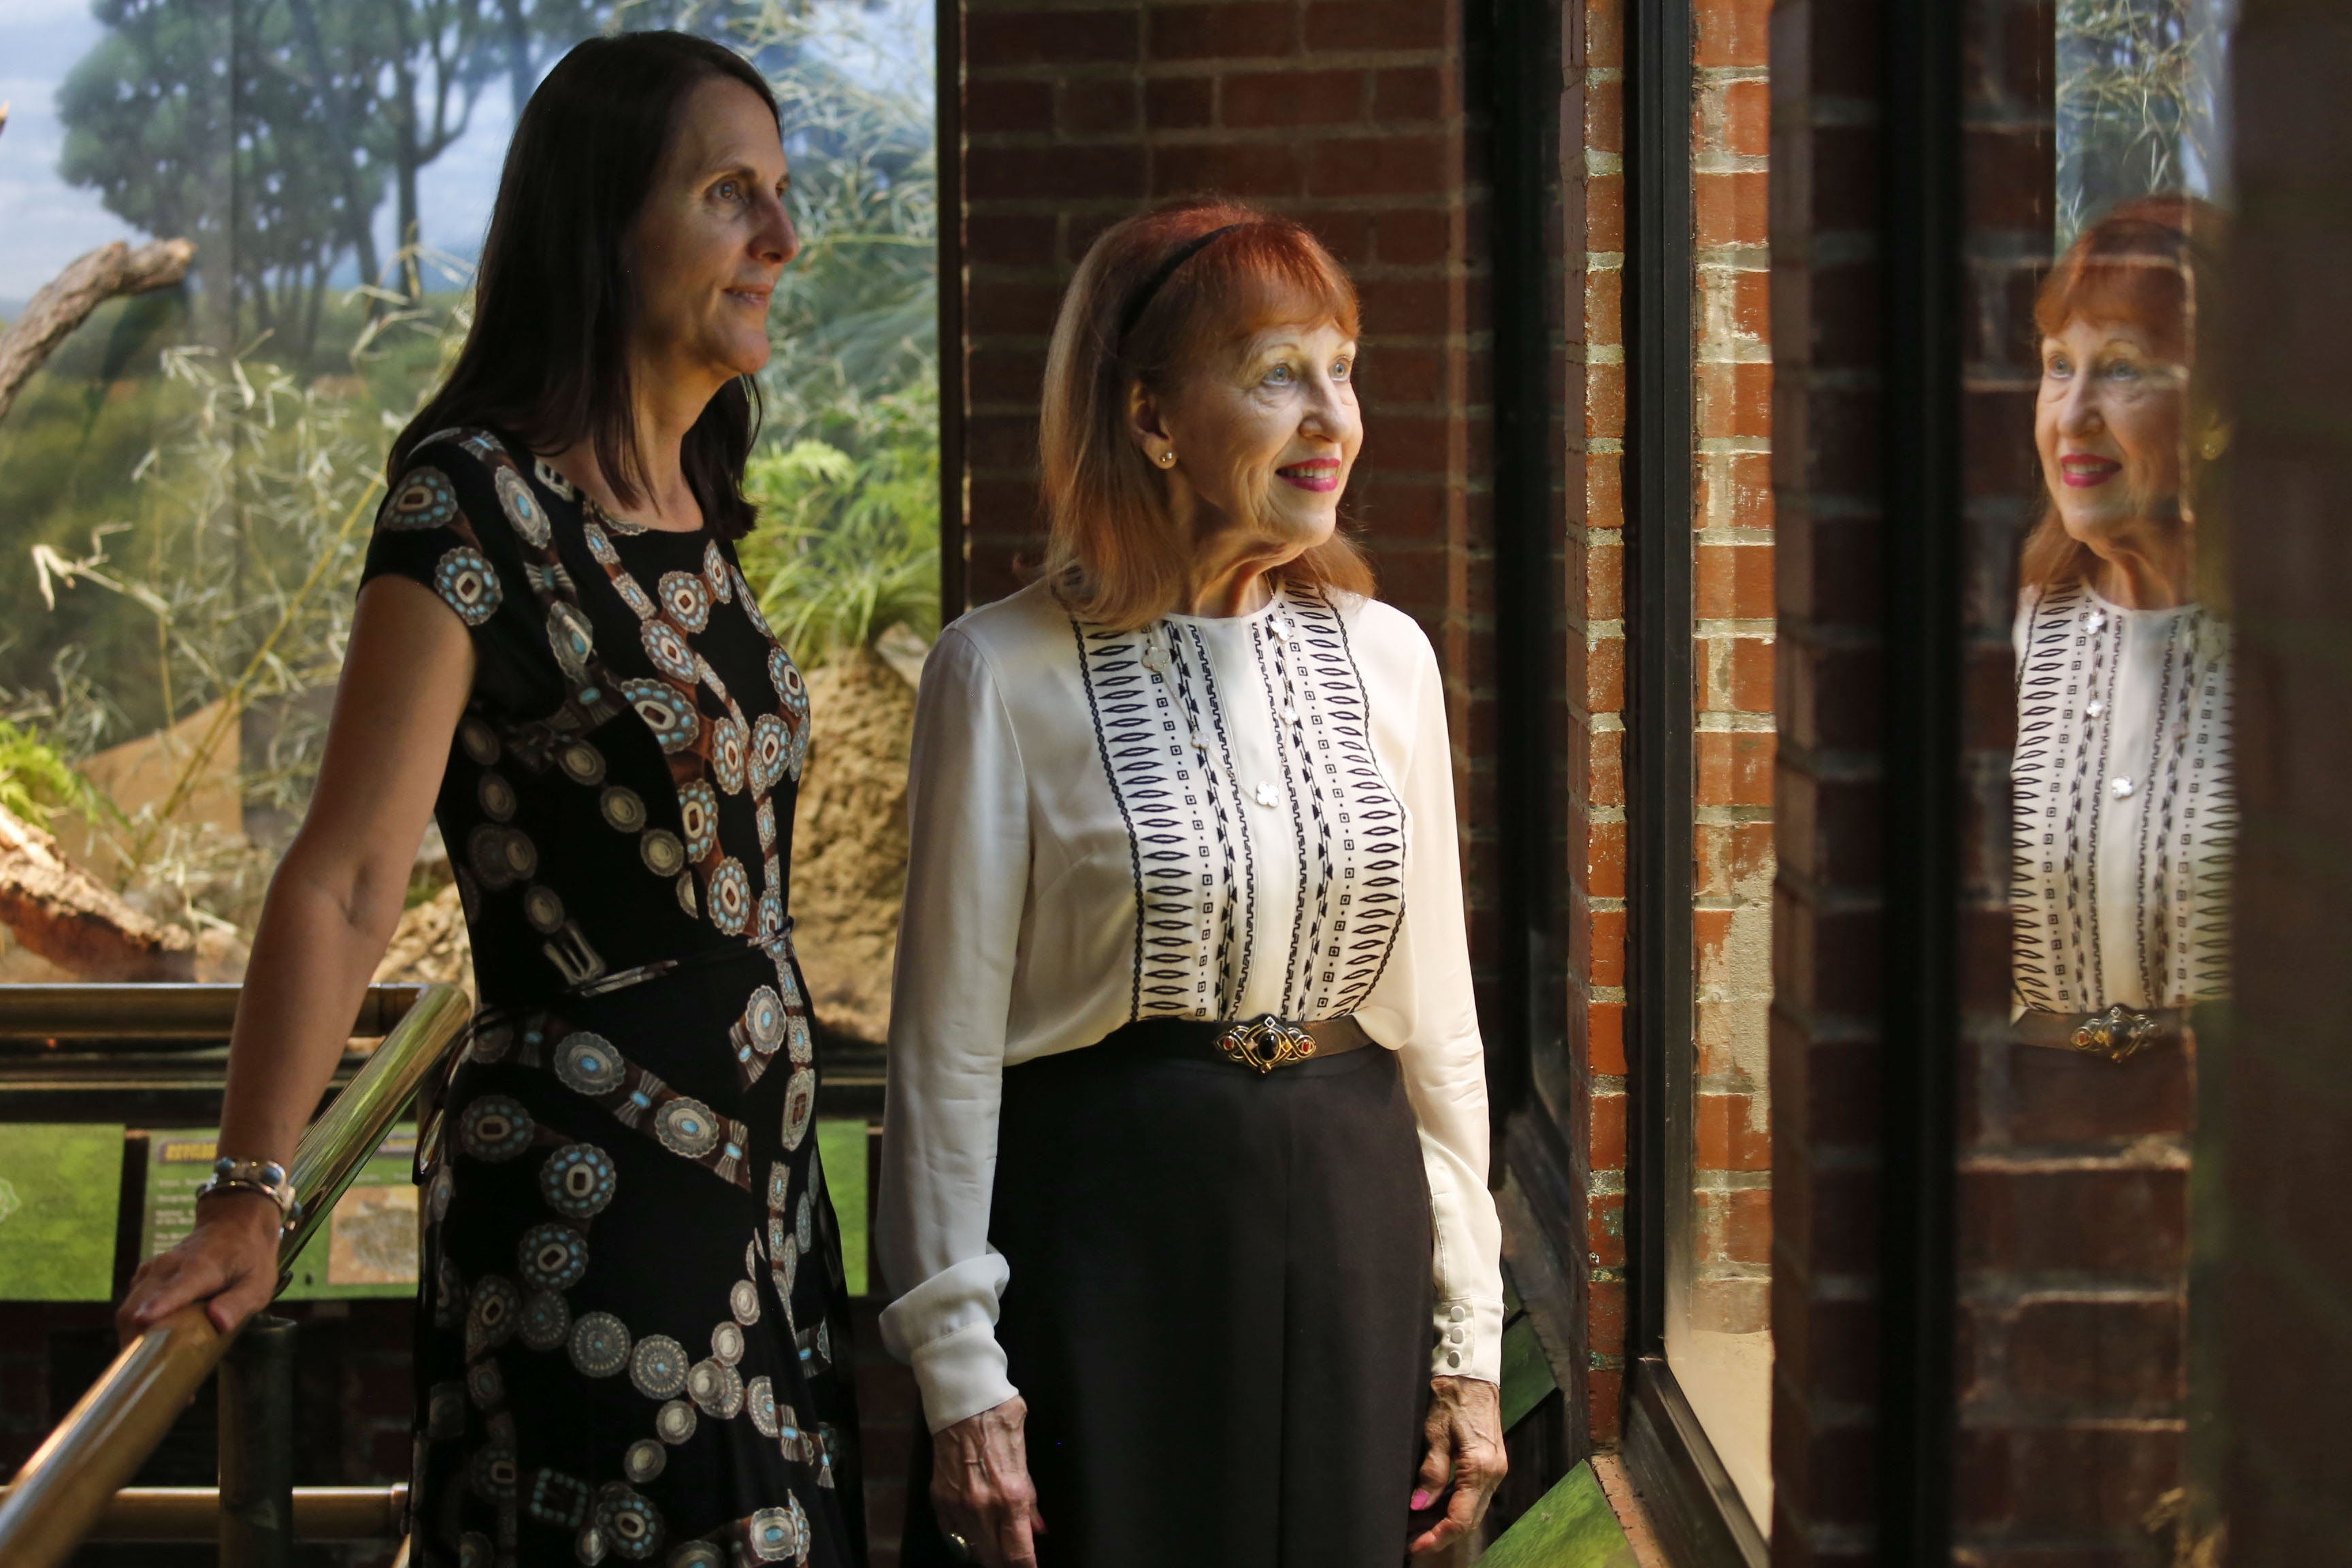 """Suzanne Perkins-Gordon, right, daughter of Marlin Perkins, a zoologist who ran the Buffalo Zoo before becoming the TV host of """"Wild Kingdom,"""" toured the exhibits Wednesday with a fan of her father, Zoo President Donna Fernandes."""